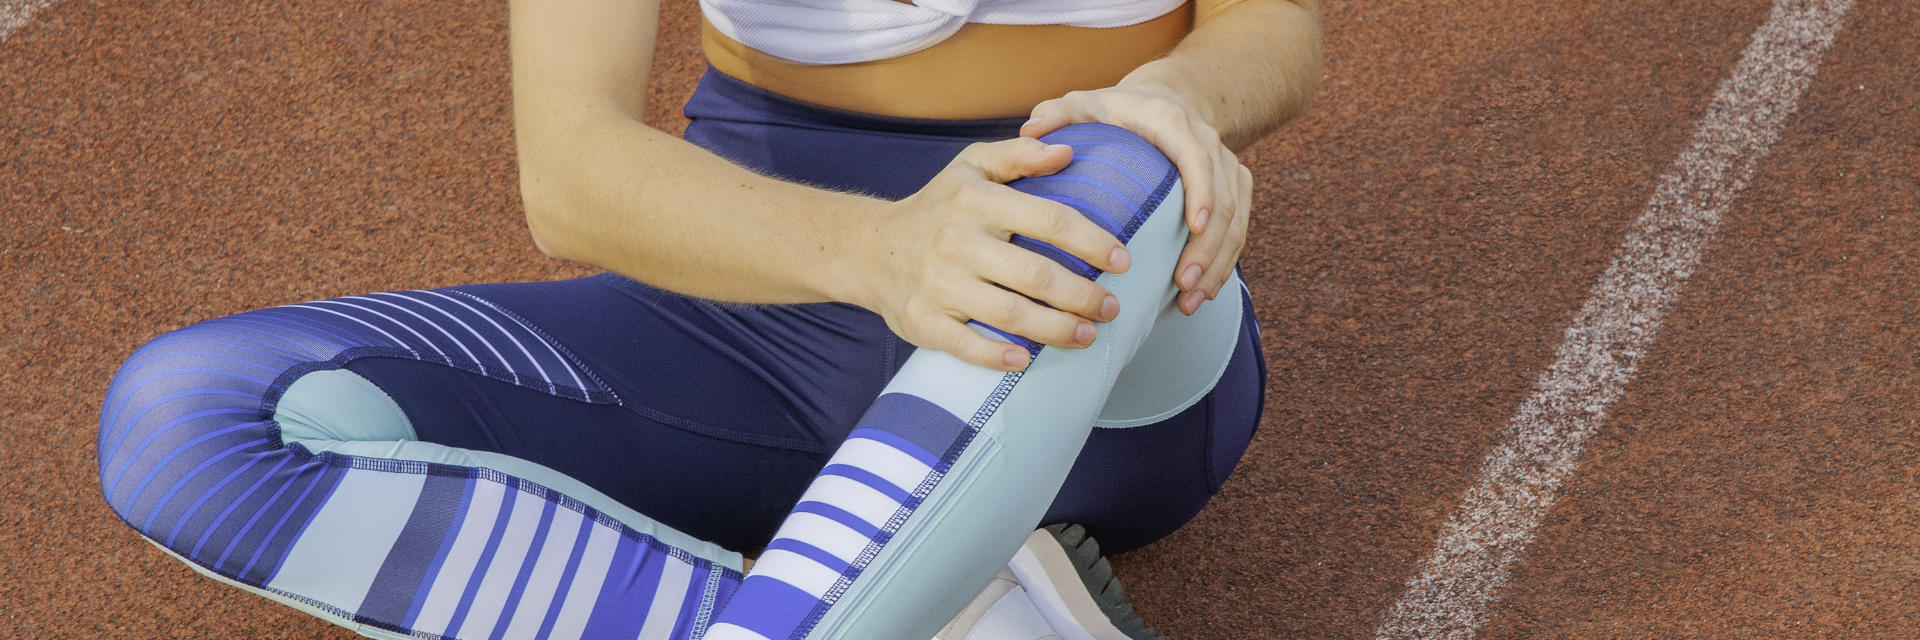 An injured sportswoman sitting on the running track and touching the painful knee area.